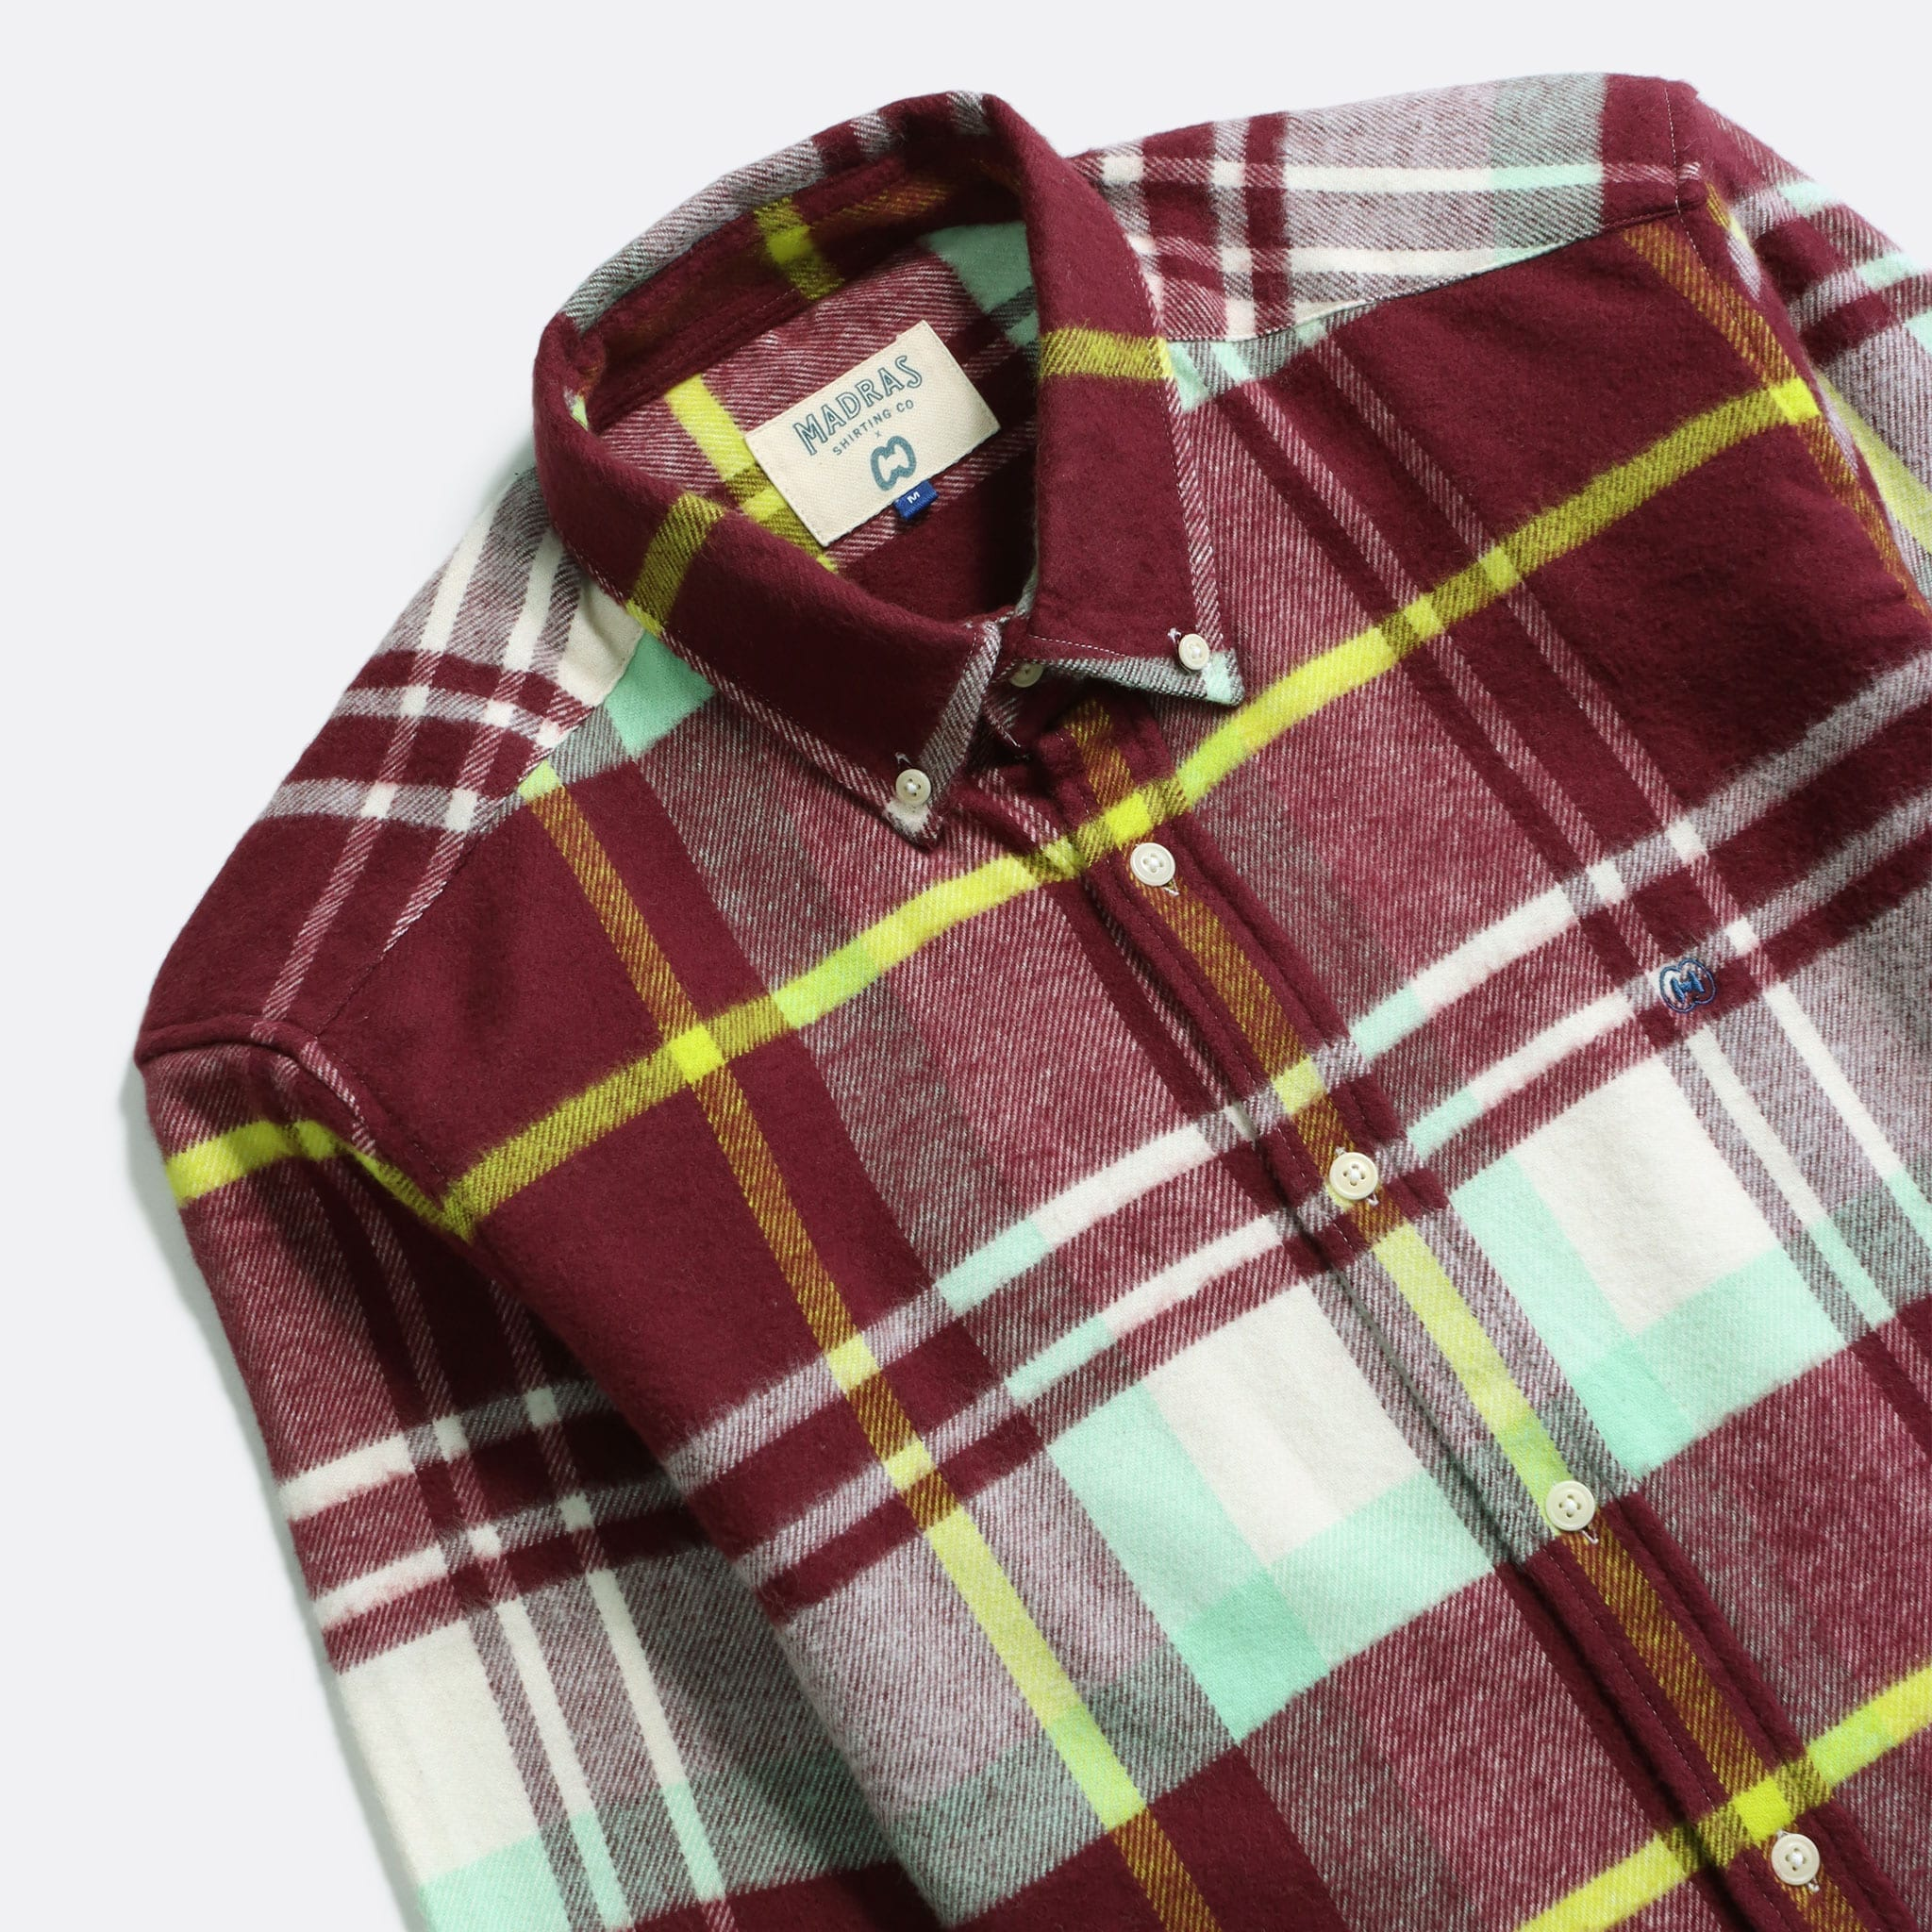 MSCo x Casual Co – Mod Button Down Long Sleeve Shirt a Burgundy Check Up-Cycled Cotton Flannel Fabric 2